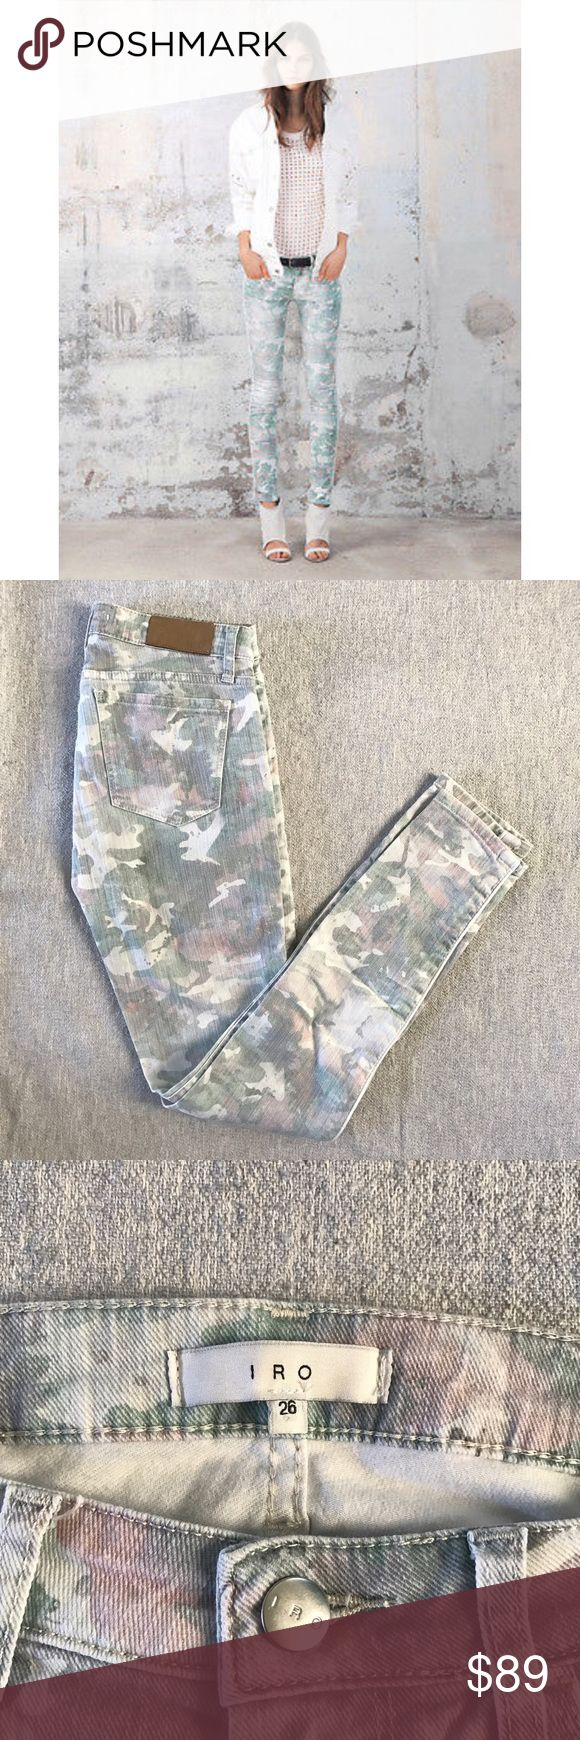 """IRO Camo Skinny Jeans IRO Camo Skinny Jeans """"damia"""". In perfect condition, barely worn! Size 26. IRO Jeans Skinny"""